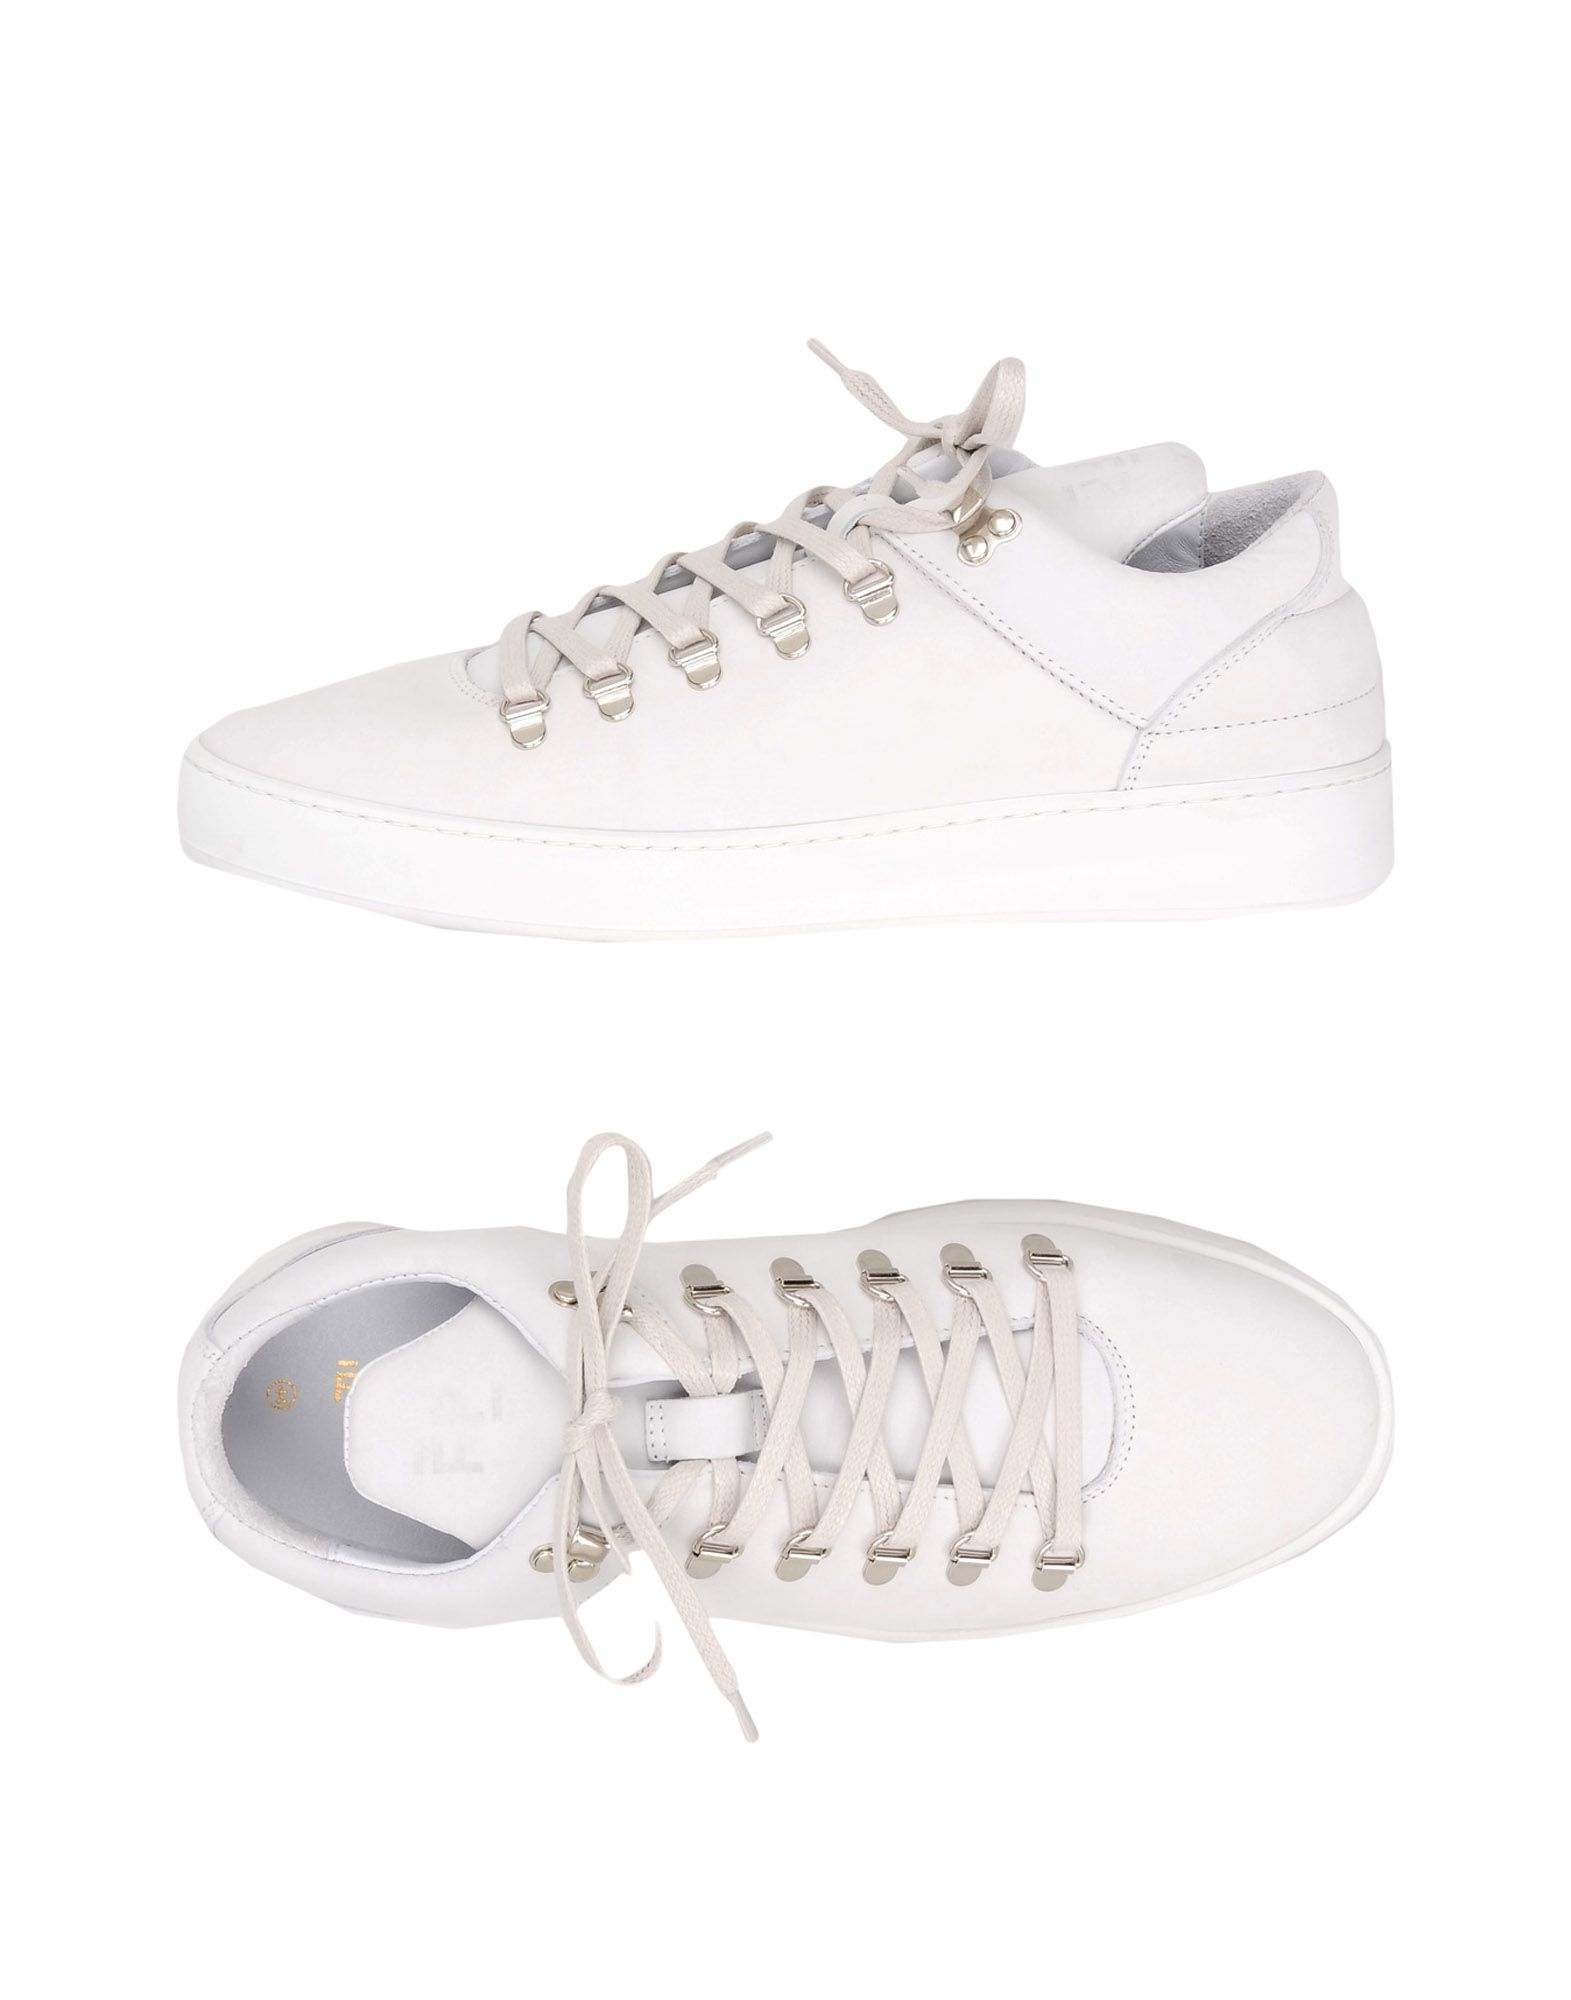 Sneakers Filling Pieces Mountain Cut Plain Basic All White - Homme - Sneakers Filling Pieces  Blanc Chaussures femme pas cher homme et femme